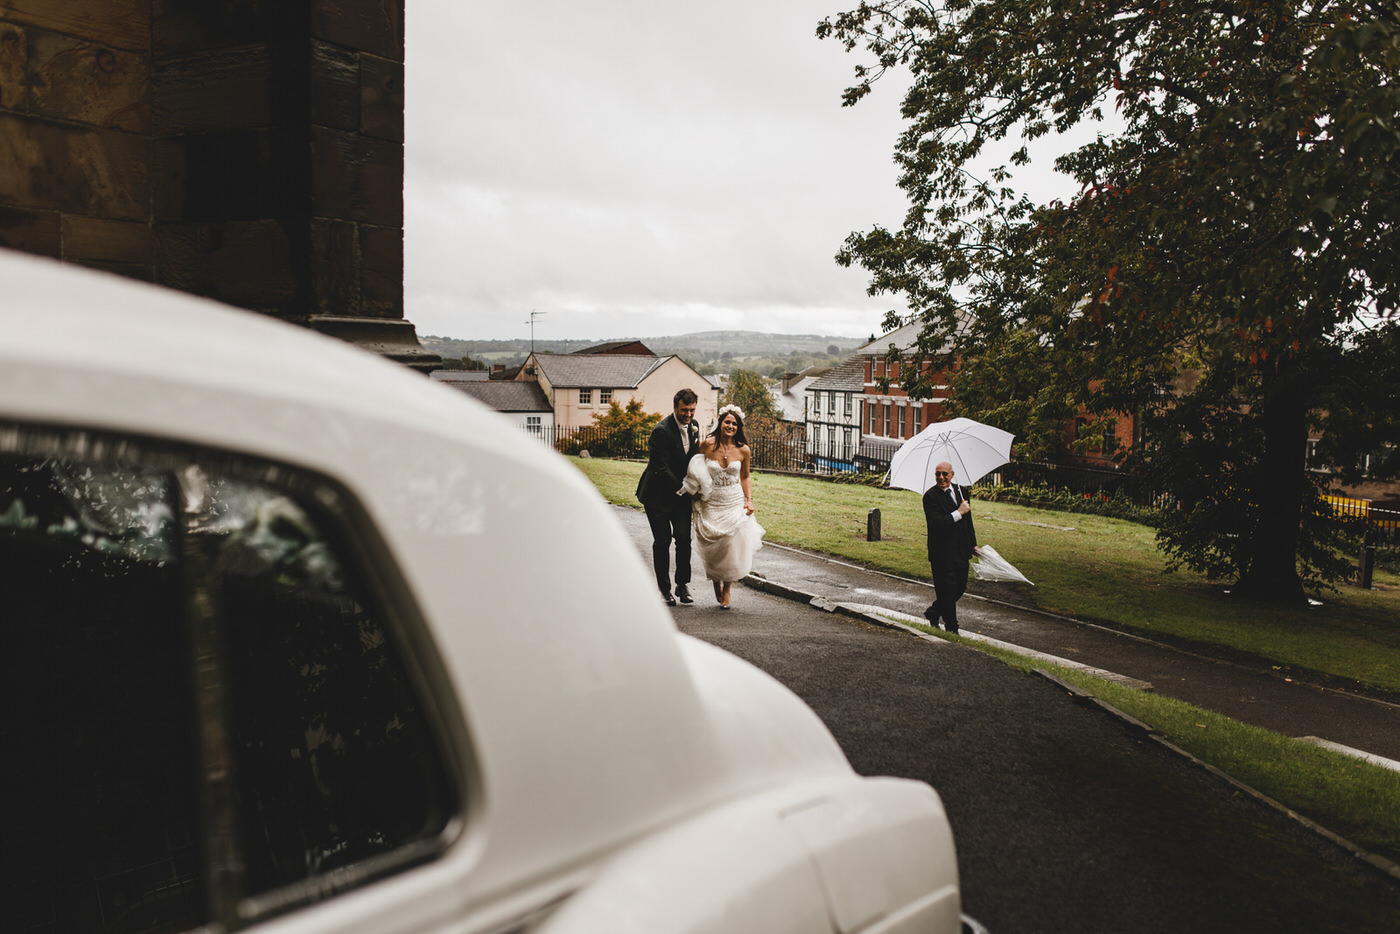 the happy couple take a short walk to the waiting wedding car